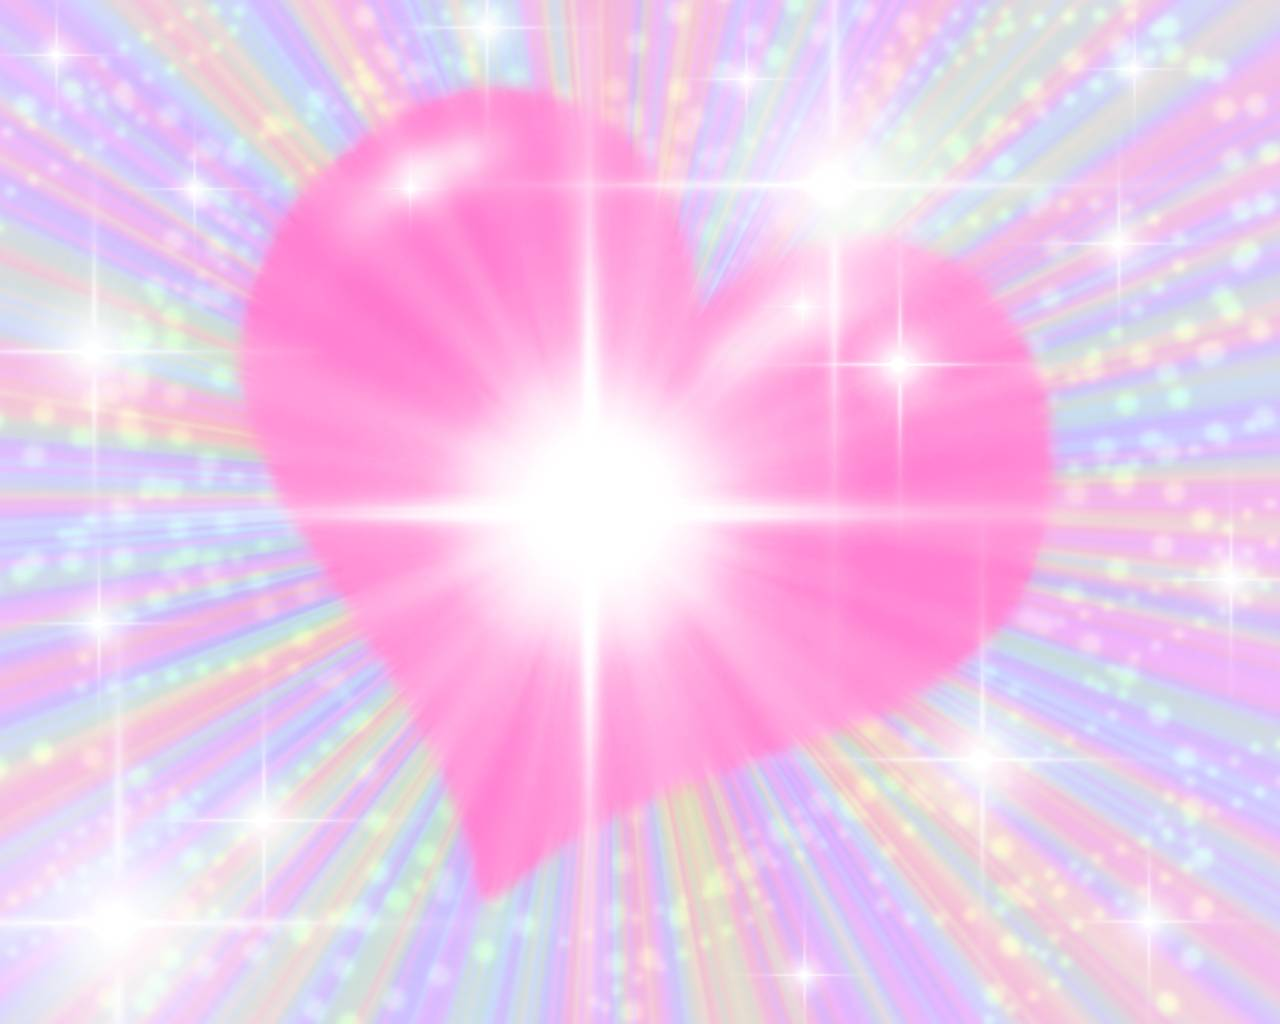 Cute Heart Wallpapers 9050 Hd Wallpapers in Cute   Imagescicom 1280x1024